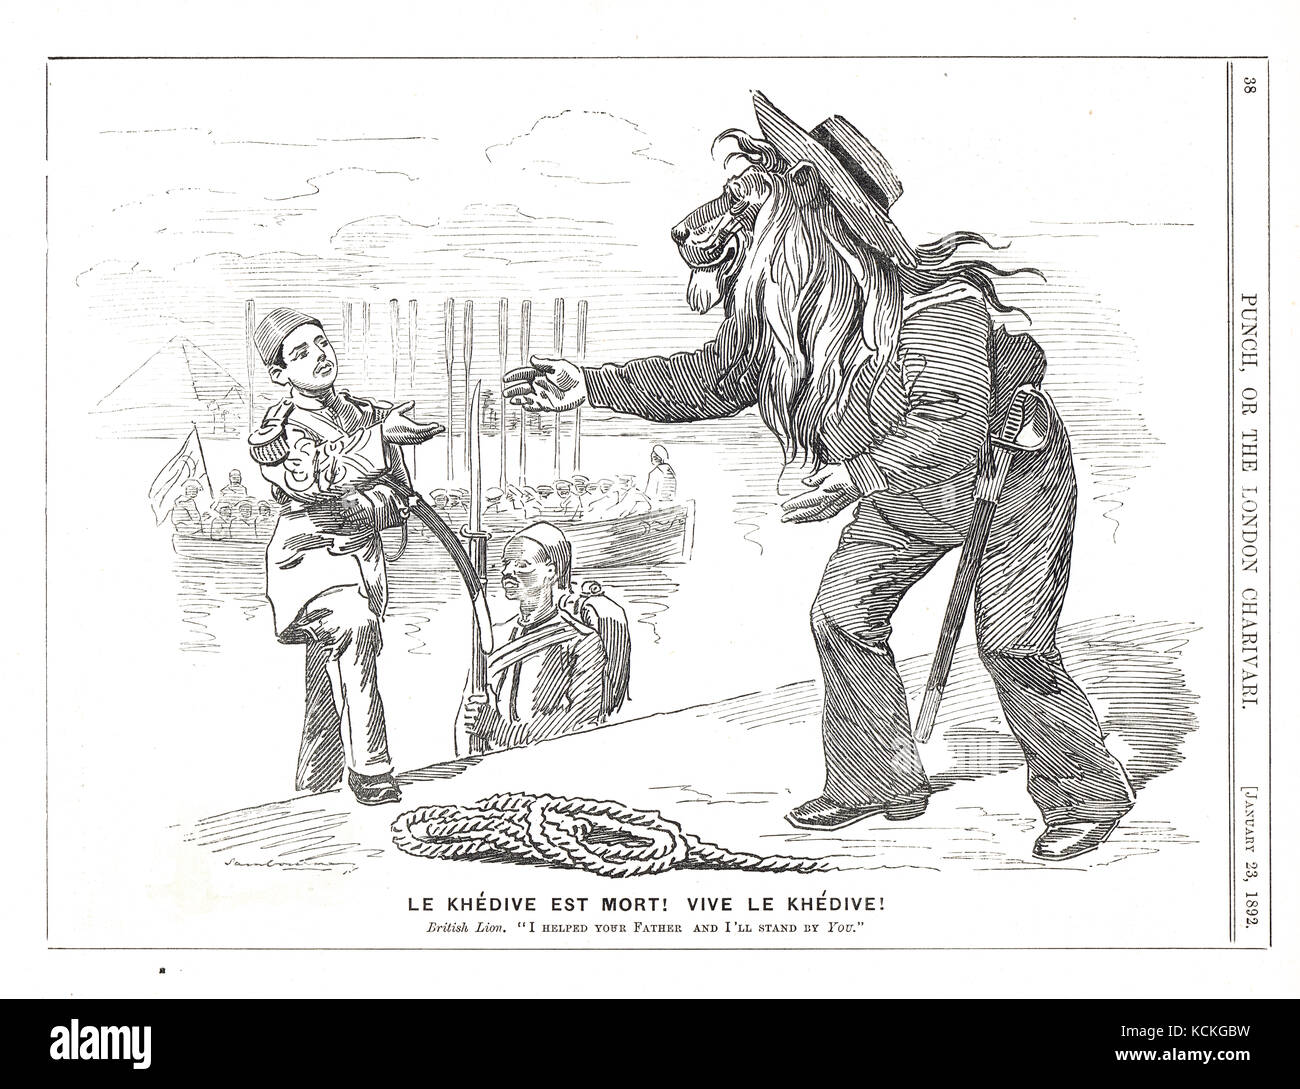 Abbas II of Egypt, welcomed by Britain, 8 January 1892, British Lion extending the hand of friendship in Punch cartoon - Stock Image